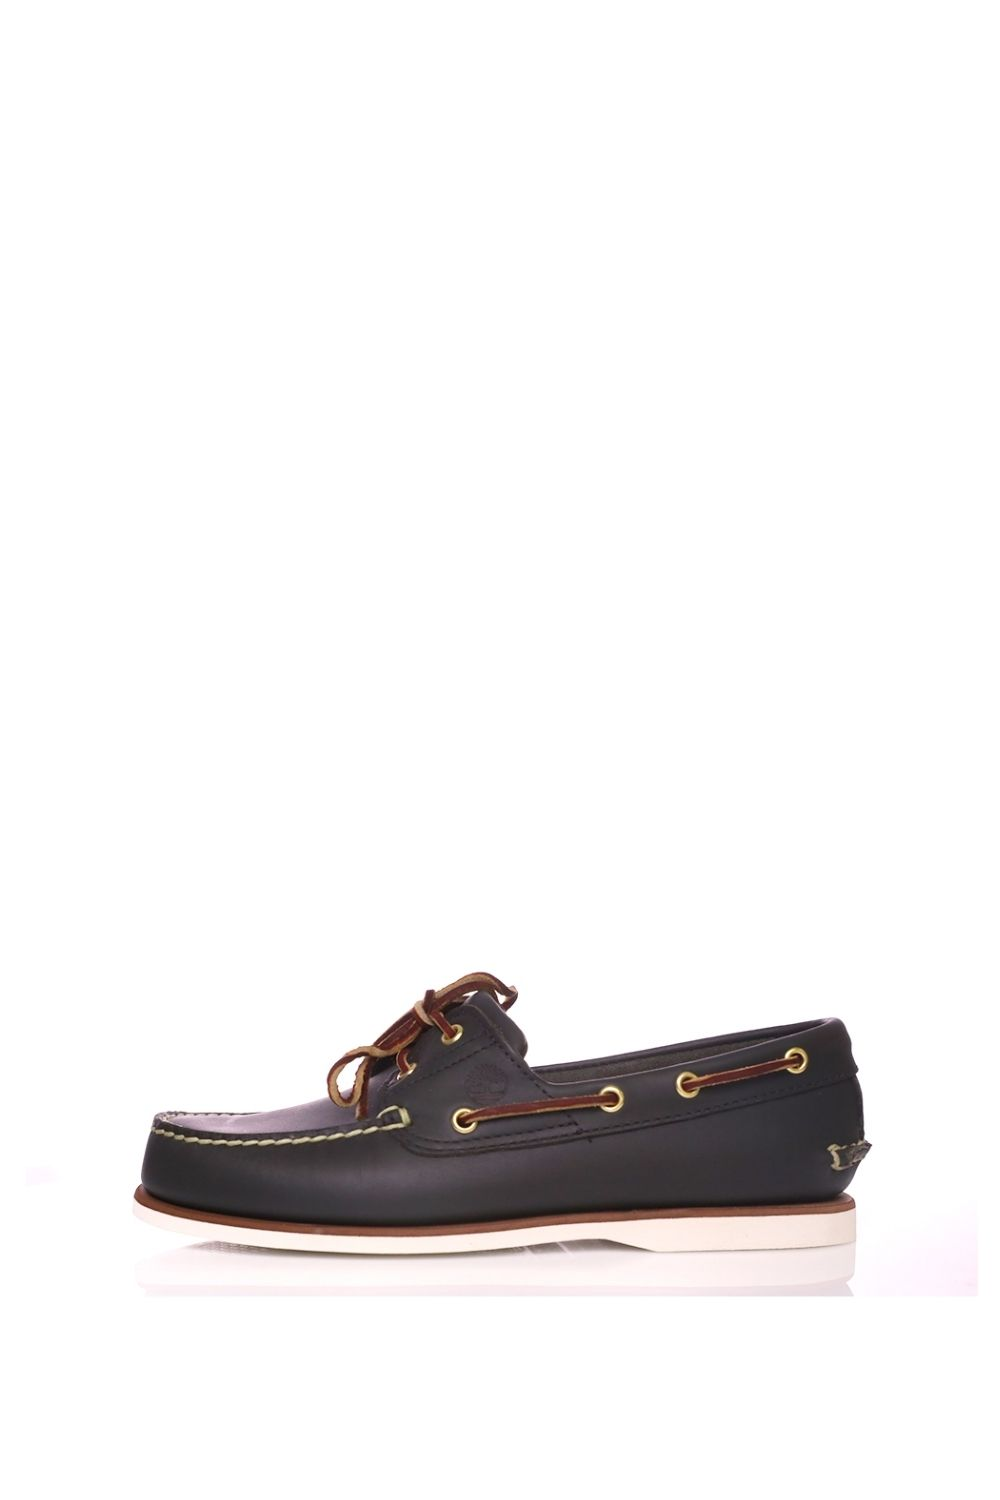 23f9235d2a9 Collective Online TIMBERLAND – Ανδρικά boat shoes TIMBERLAND EYE μπλε